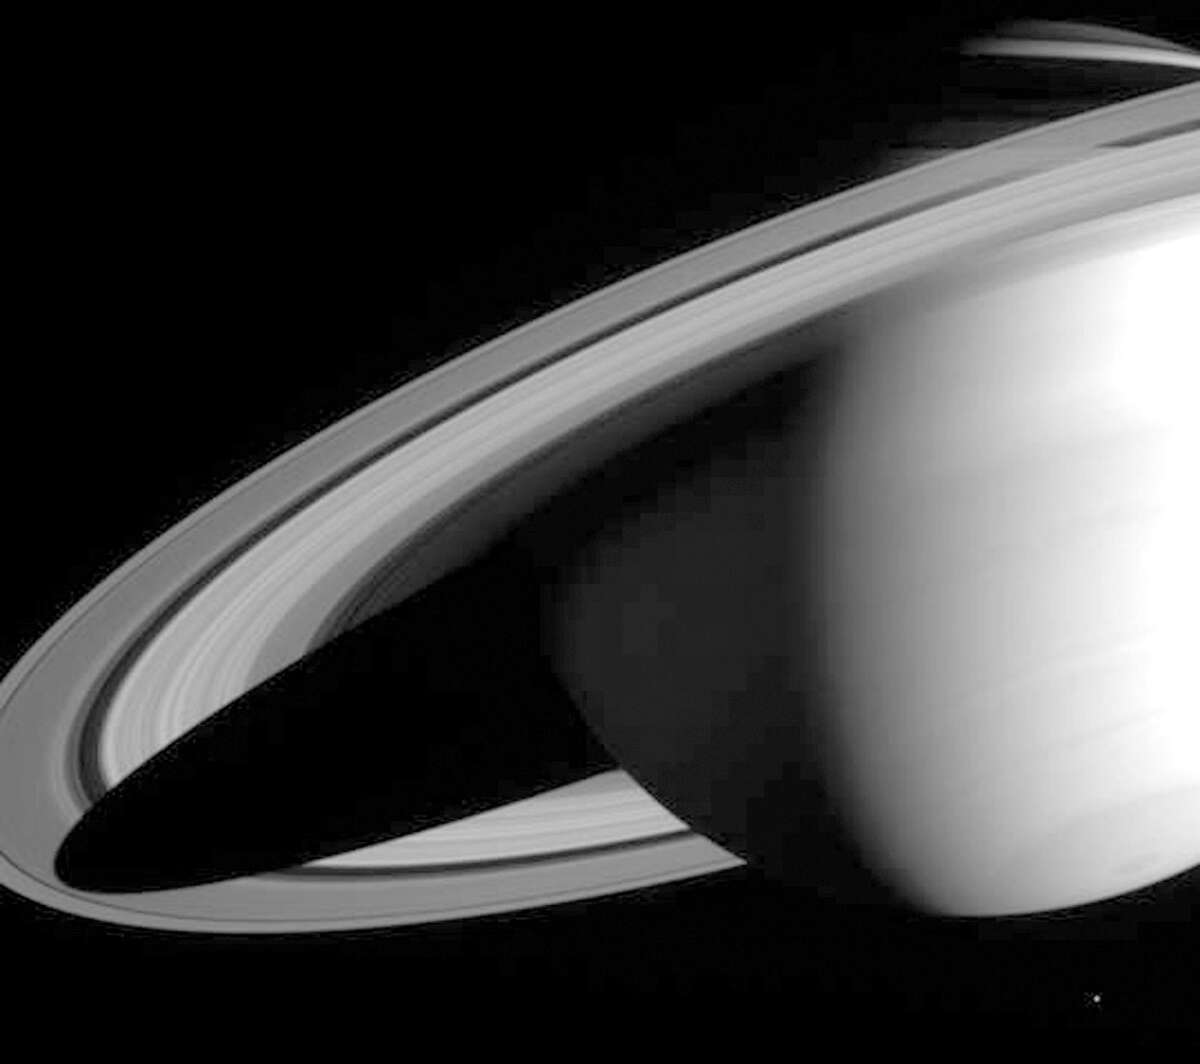 The Cassini-Huygens spacecraft returned this image of Saturn on May 16, 2004, when its imaging science subsystem narrow-angle camera was too close to fit the entire planet in its field-of-view.